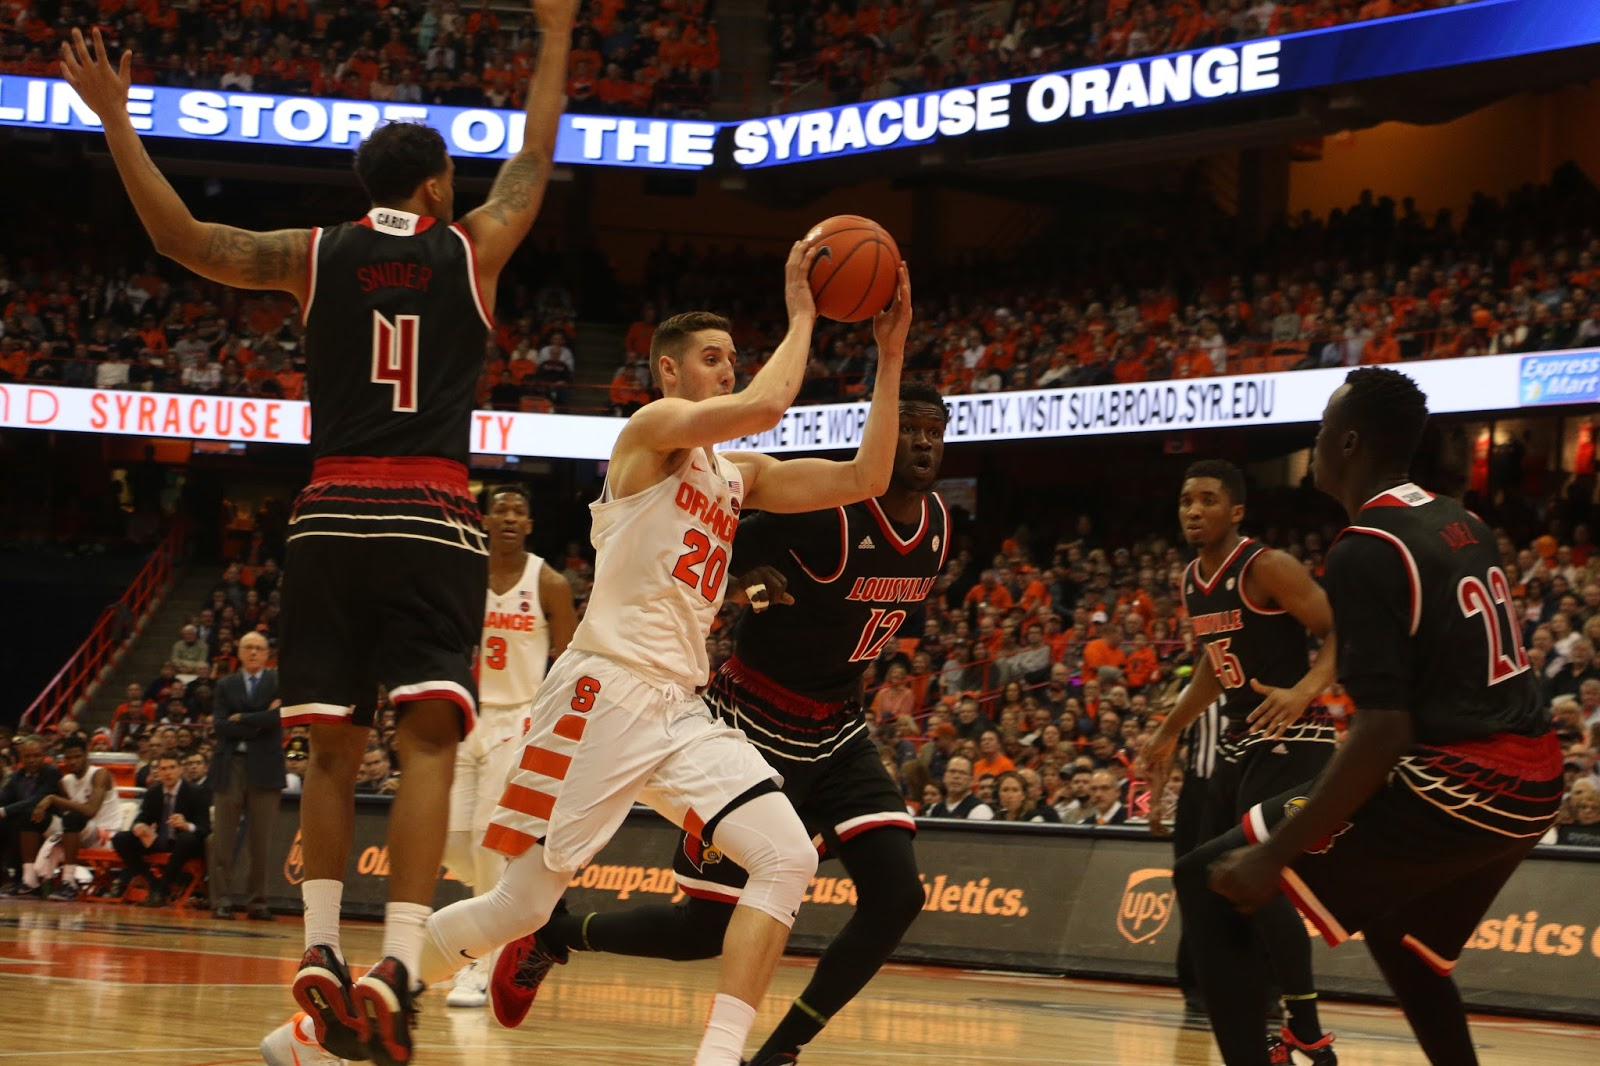 Cardinals Survive Orange Men in OT, 76-72